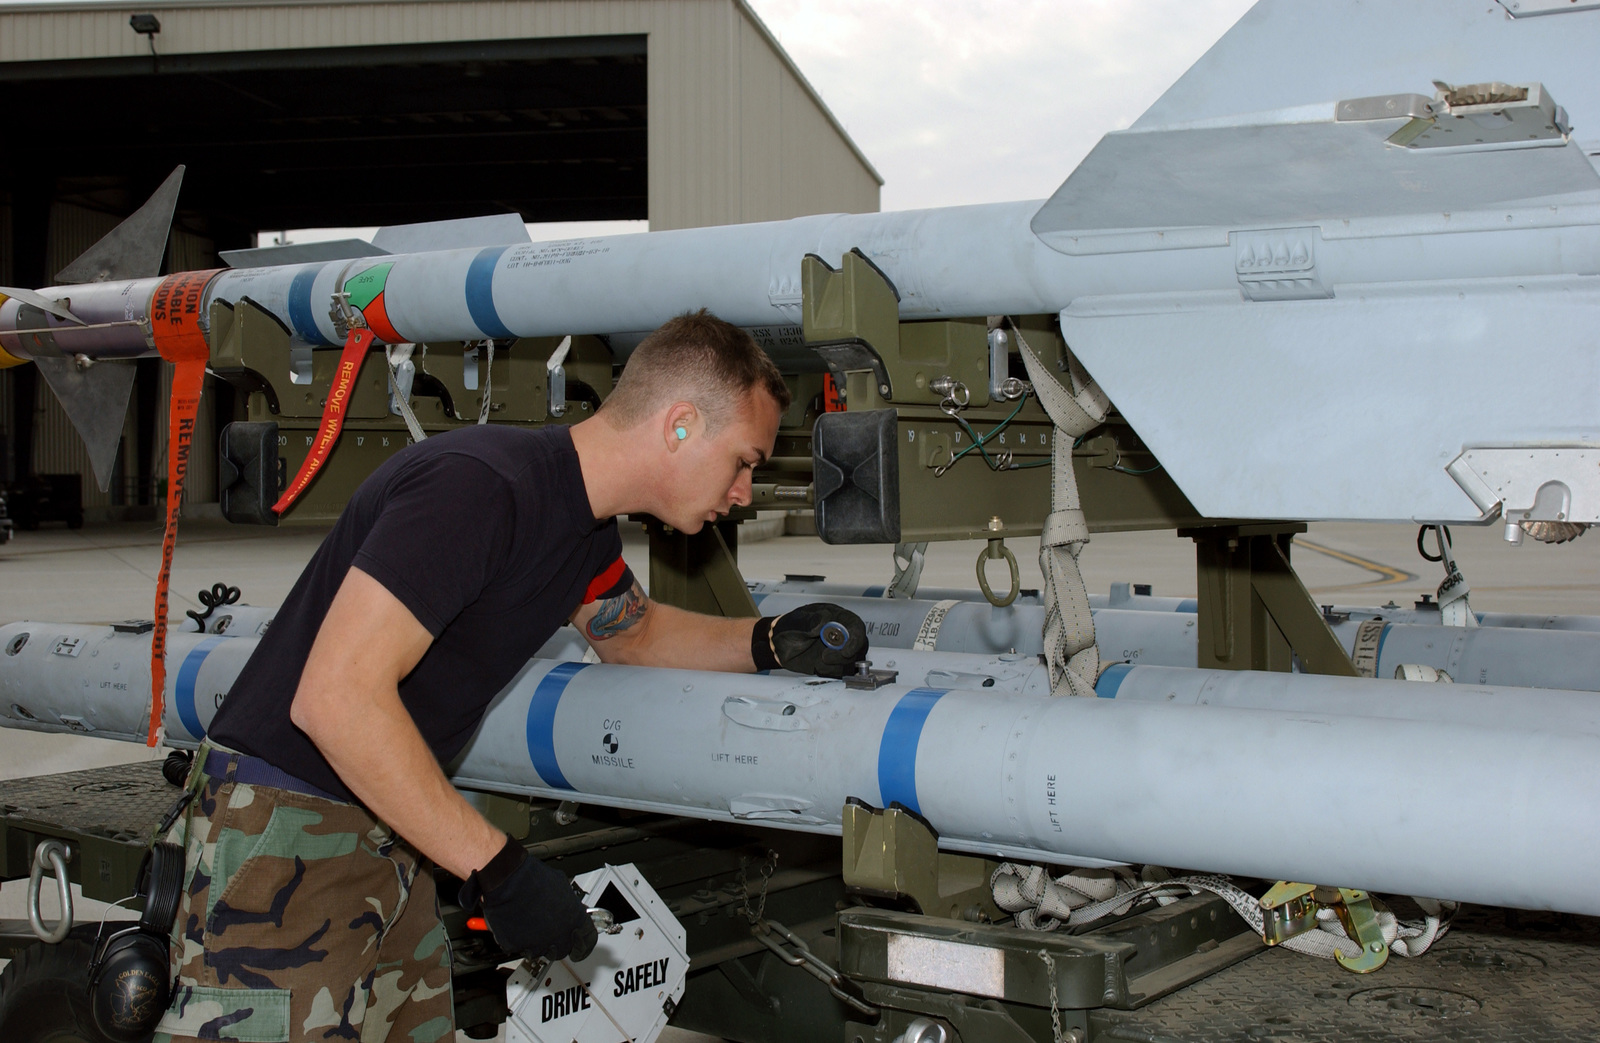 California Air National Guard SENIOR AIRMAN Carl Catron, a member of the 144th Fighter Wing, inspects AIM-9M Sidewinder heat-seeking air-to-air missiles during an Operation Readiness Exercise at Fresno Air National Guard Base at Fresno Yosemite International Aiport, Calif., on Nov. 3, 2004. (USAF PHOTO by MASTER SGT. Matthew P.Millson) (Released)